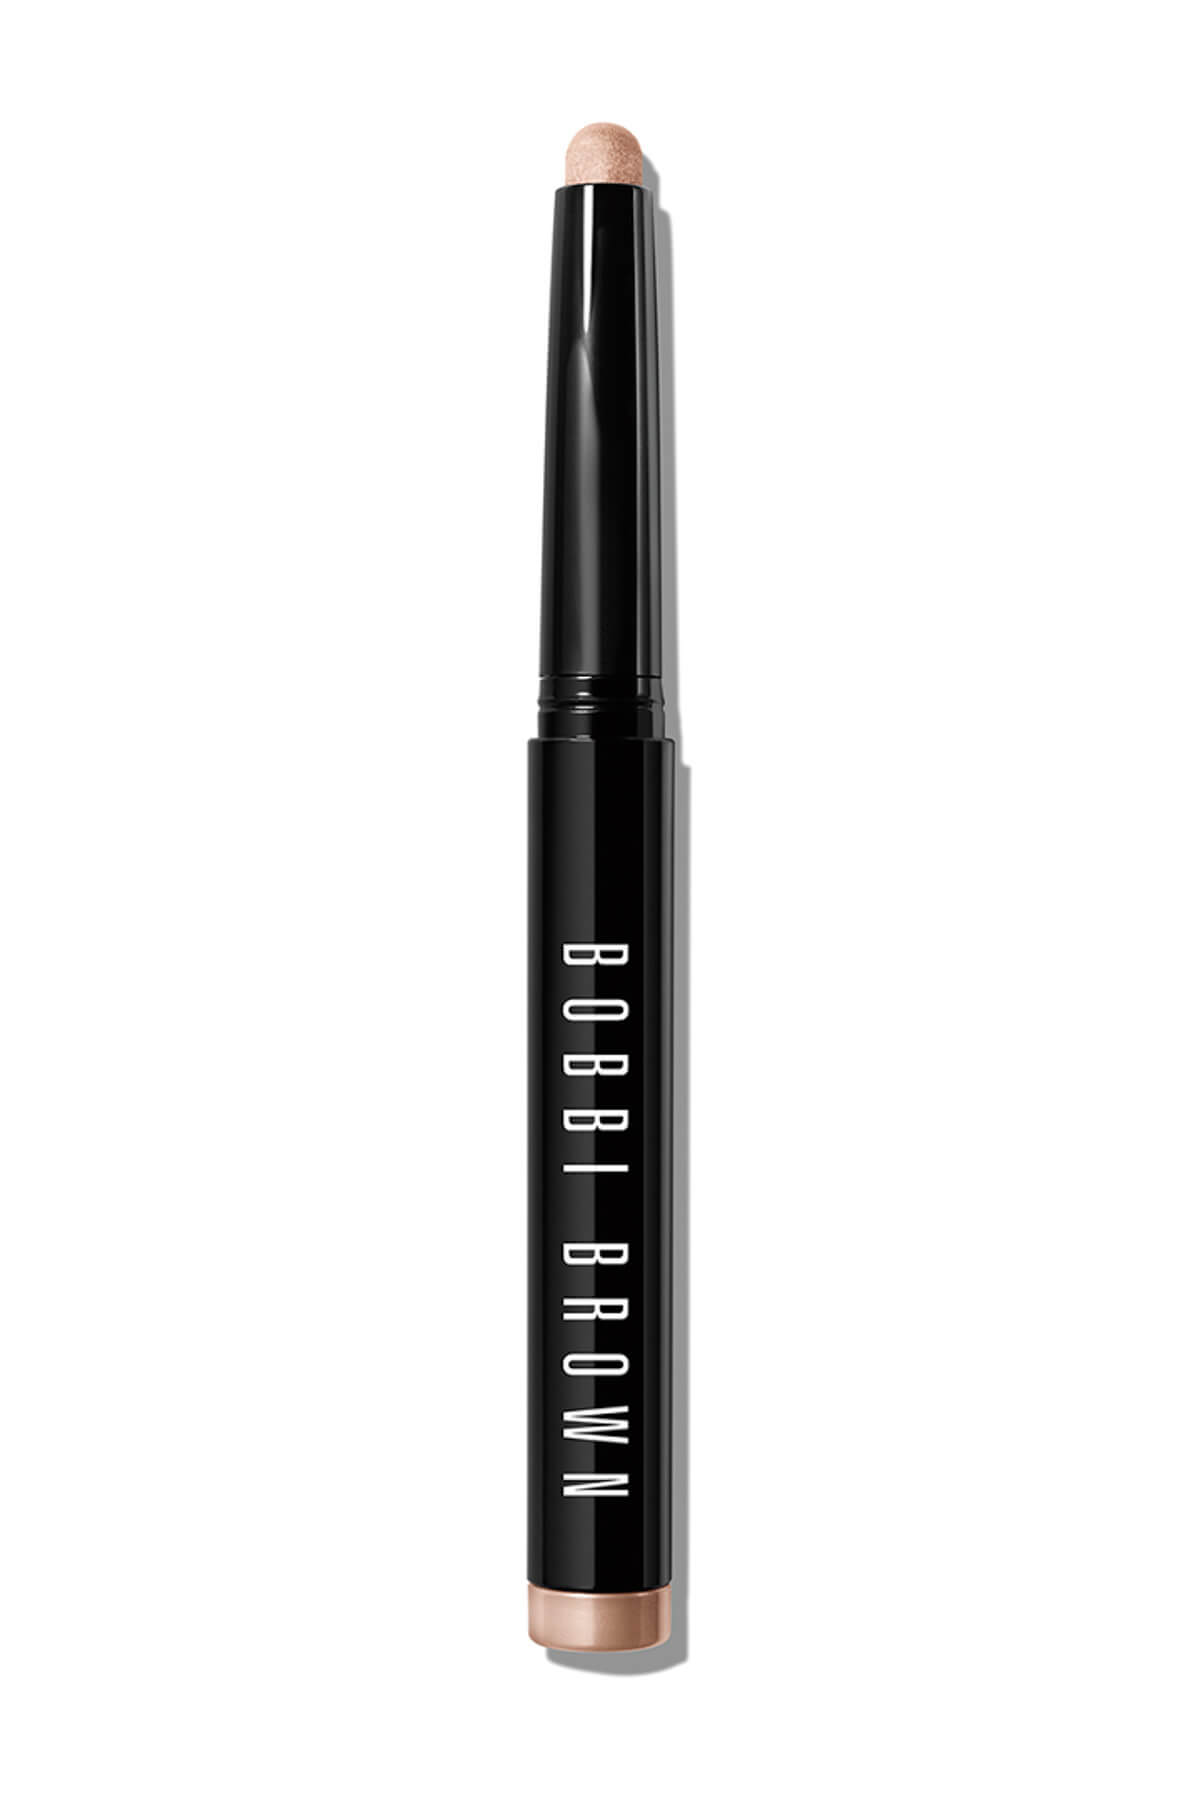 Bobbı Brown Stick Göz Farı – Long Wear Cream Shadow Malted Pink 716170157931 – 102.21 TL